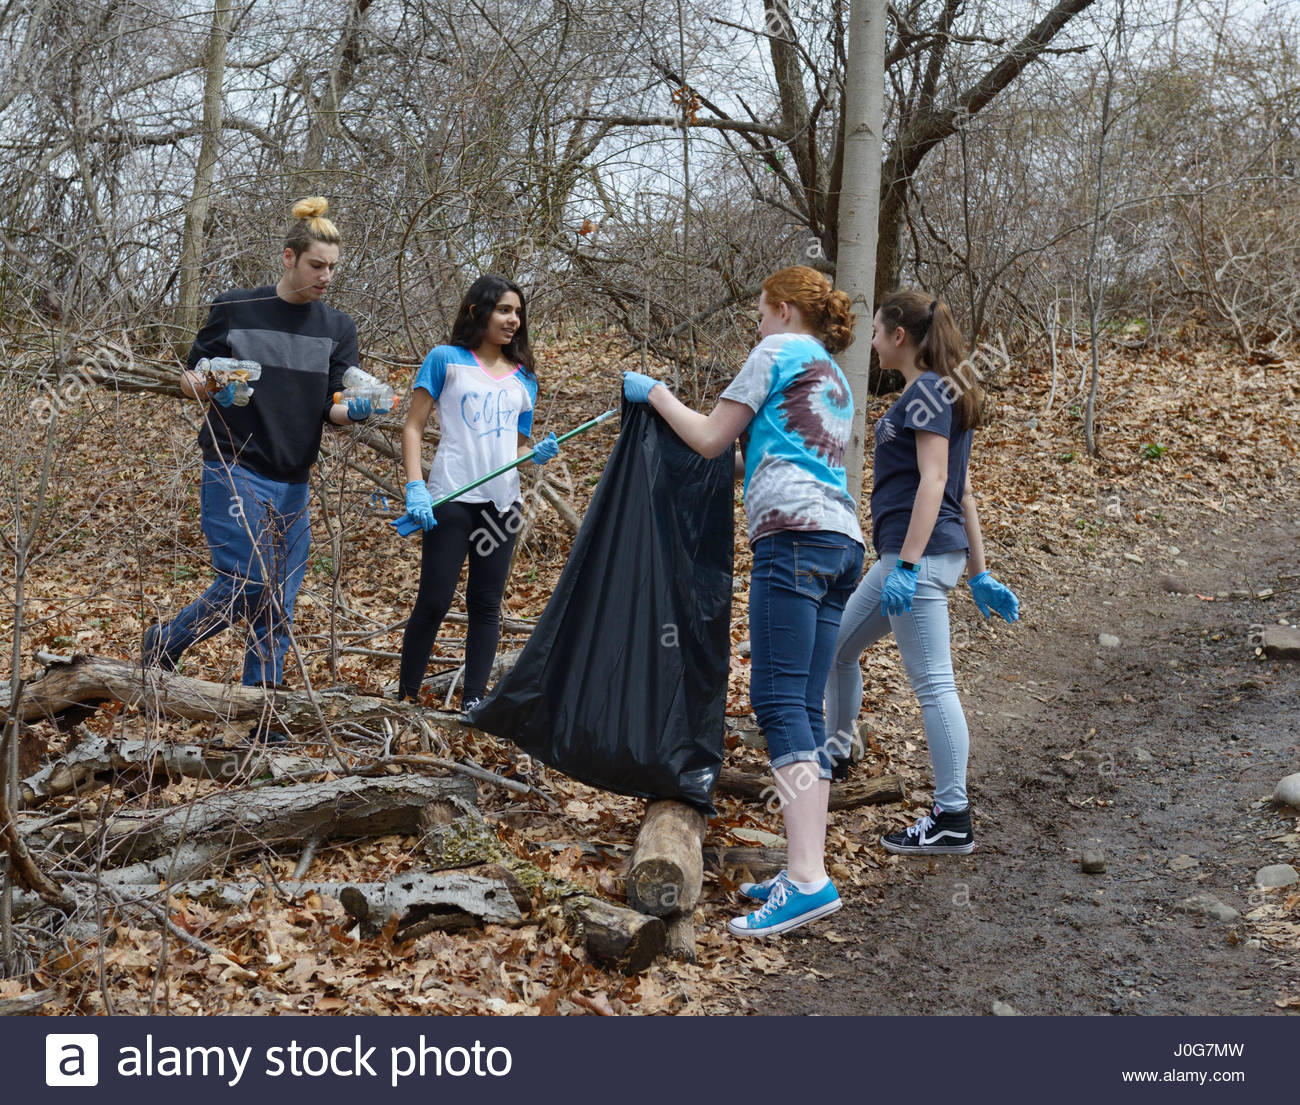 High school students involved in volunteer community service school cleanup - Stock Image